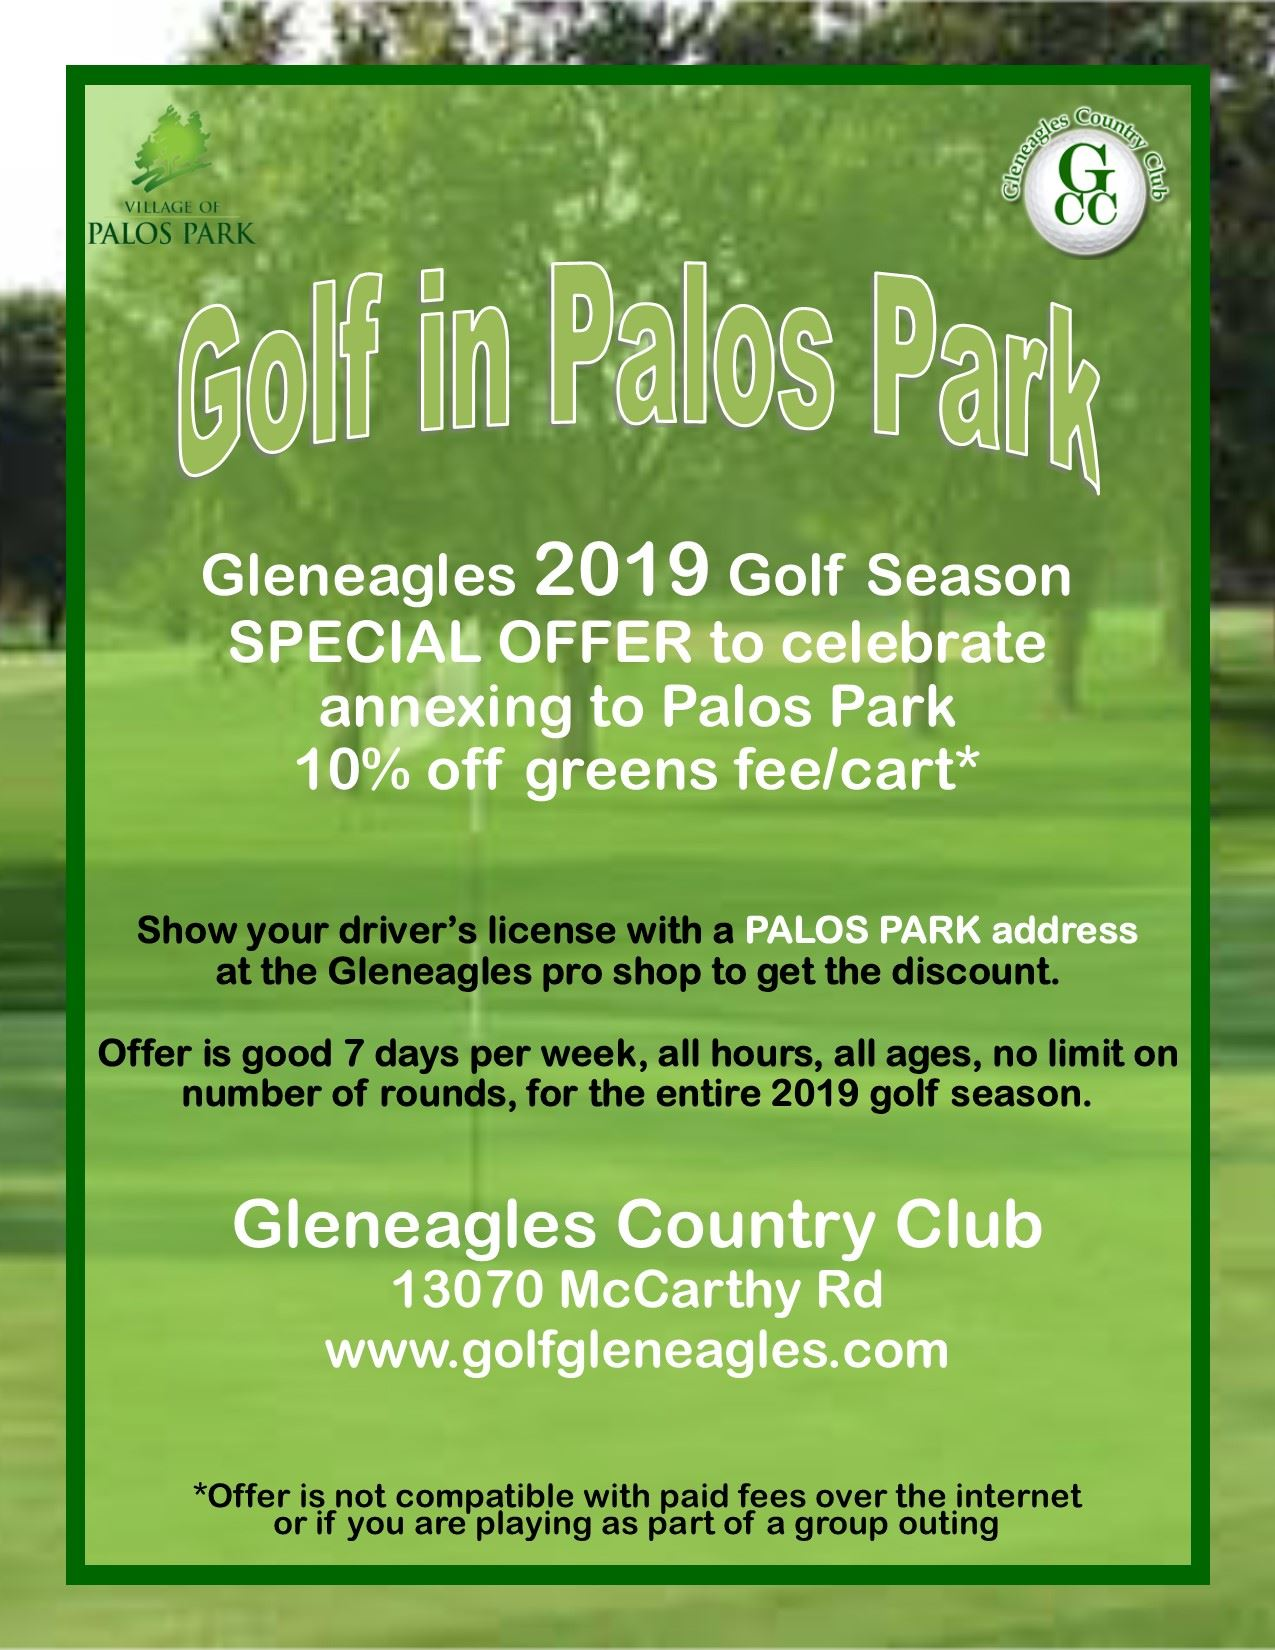 Golf--Gleneagles 2019 discount flyer (002) Opens in new window